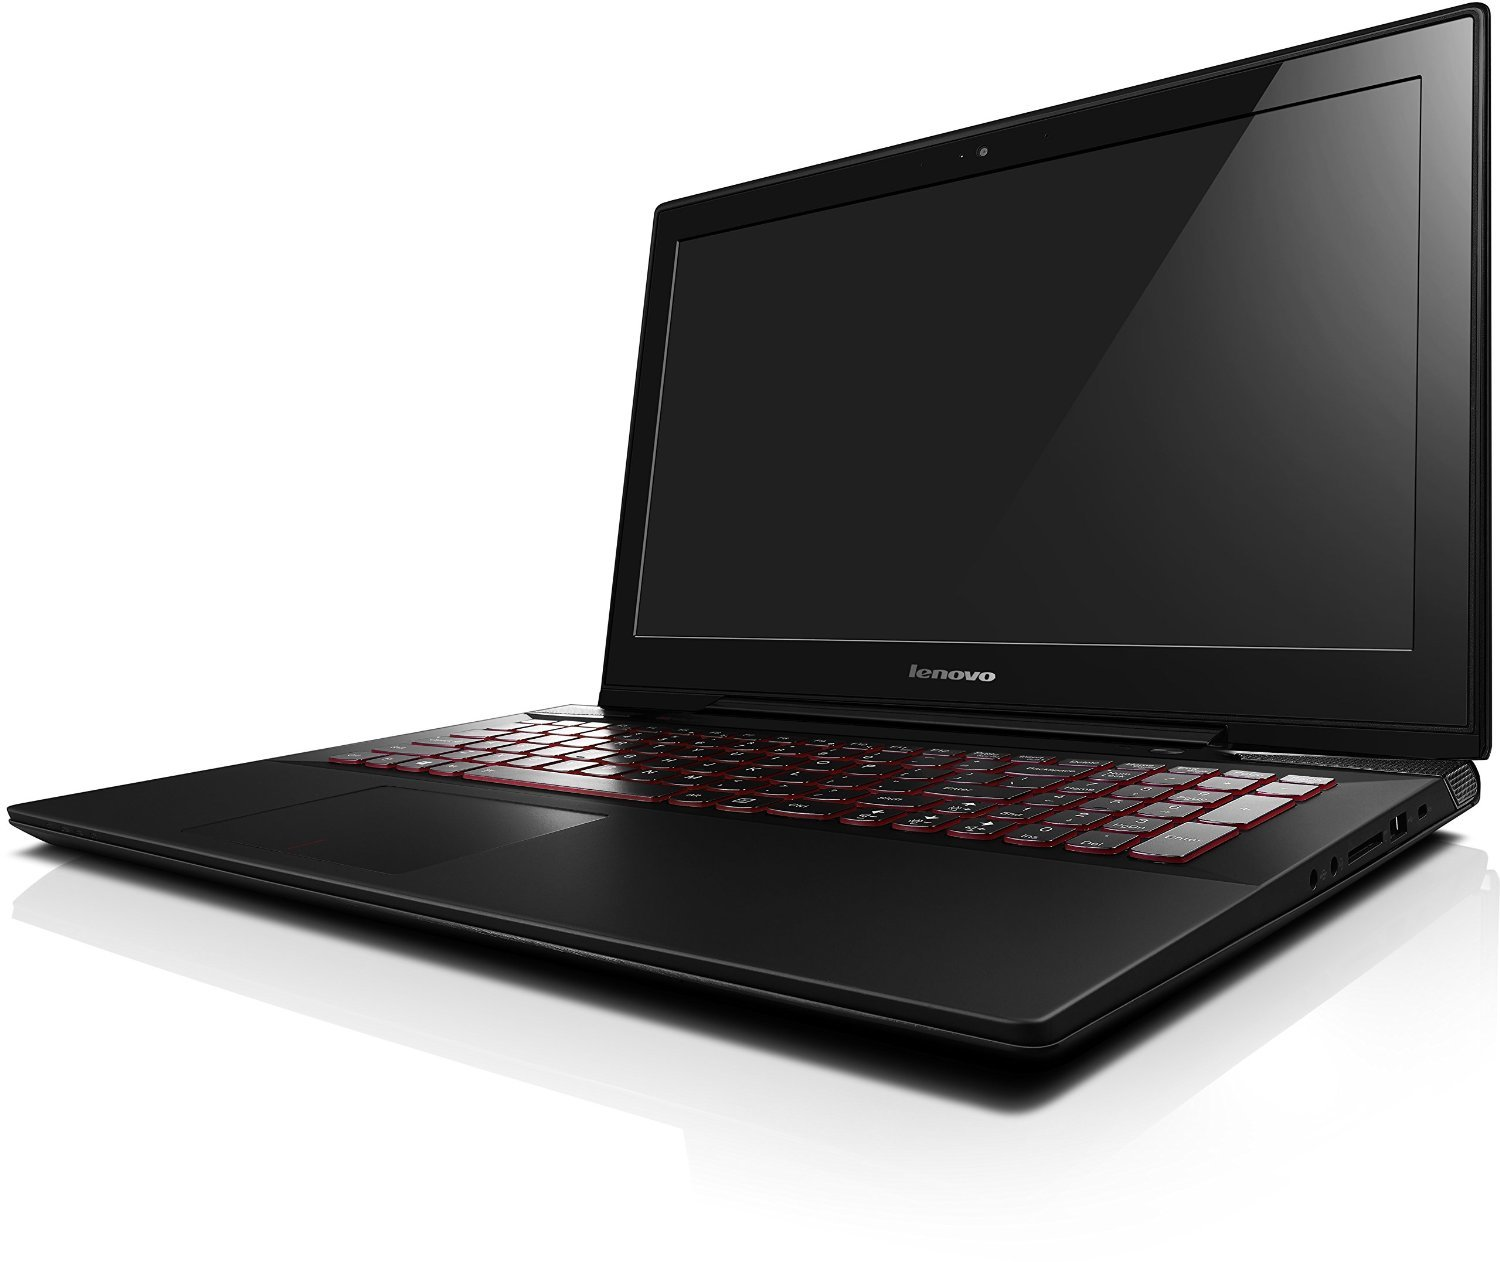 lenovo ideapad y50 70 59442843 test gaming notebook. Black Bedroom Furniture Sets. Home Design Ideas